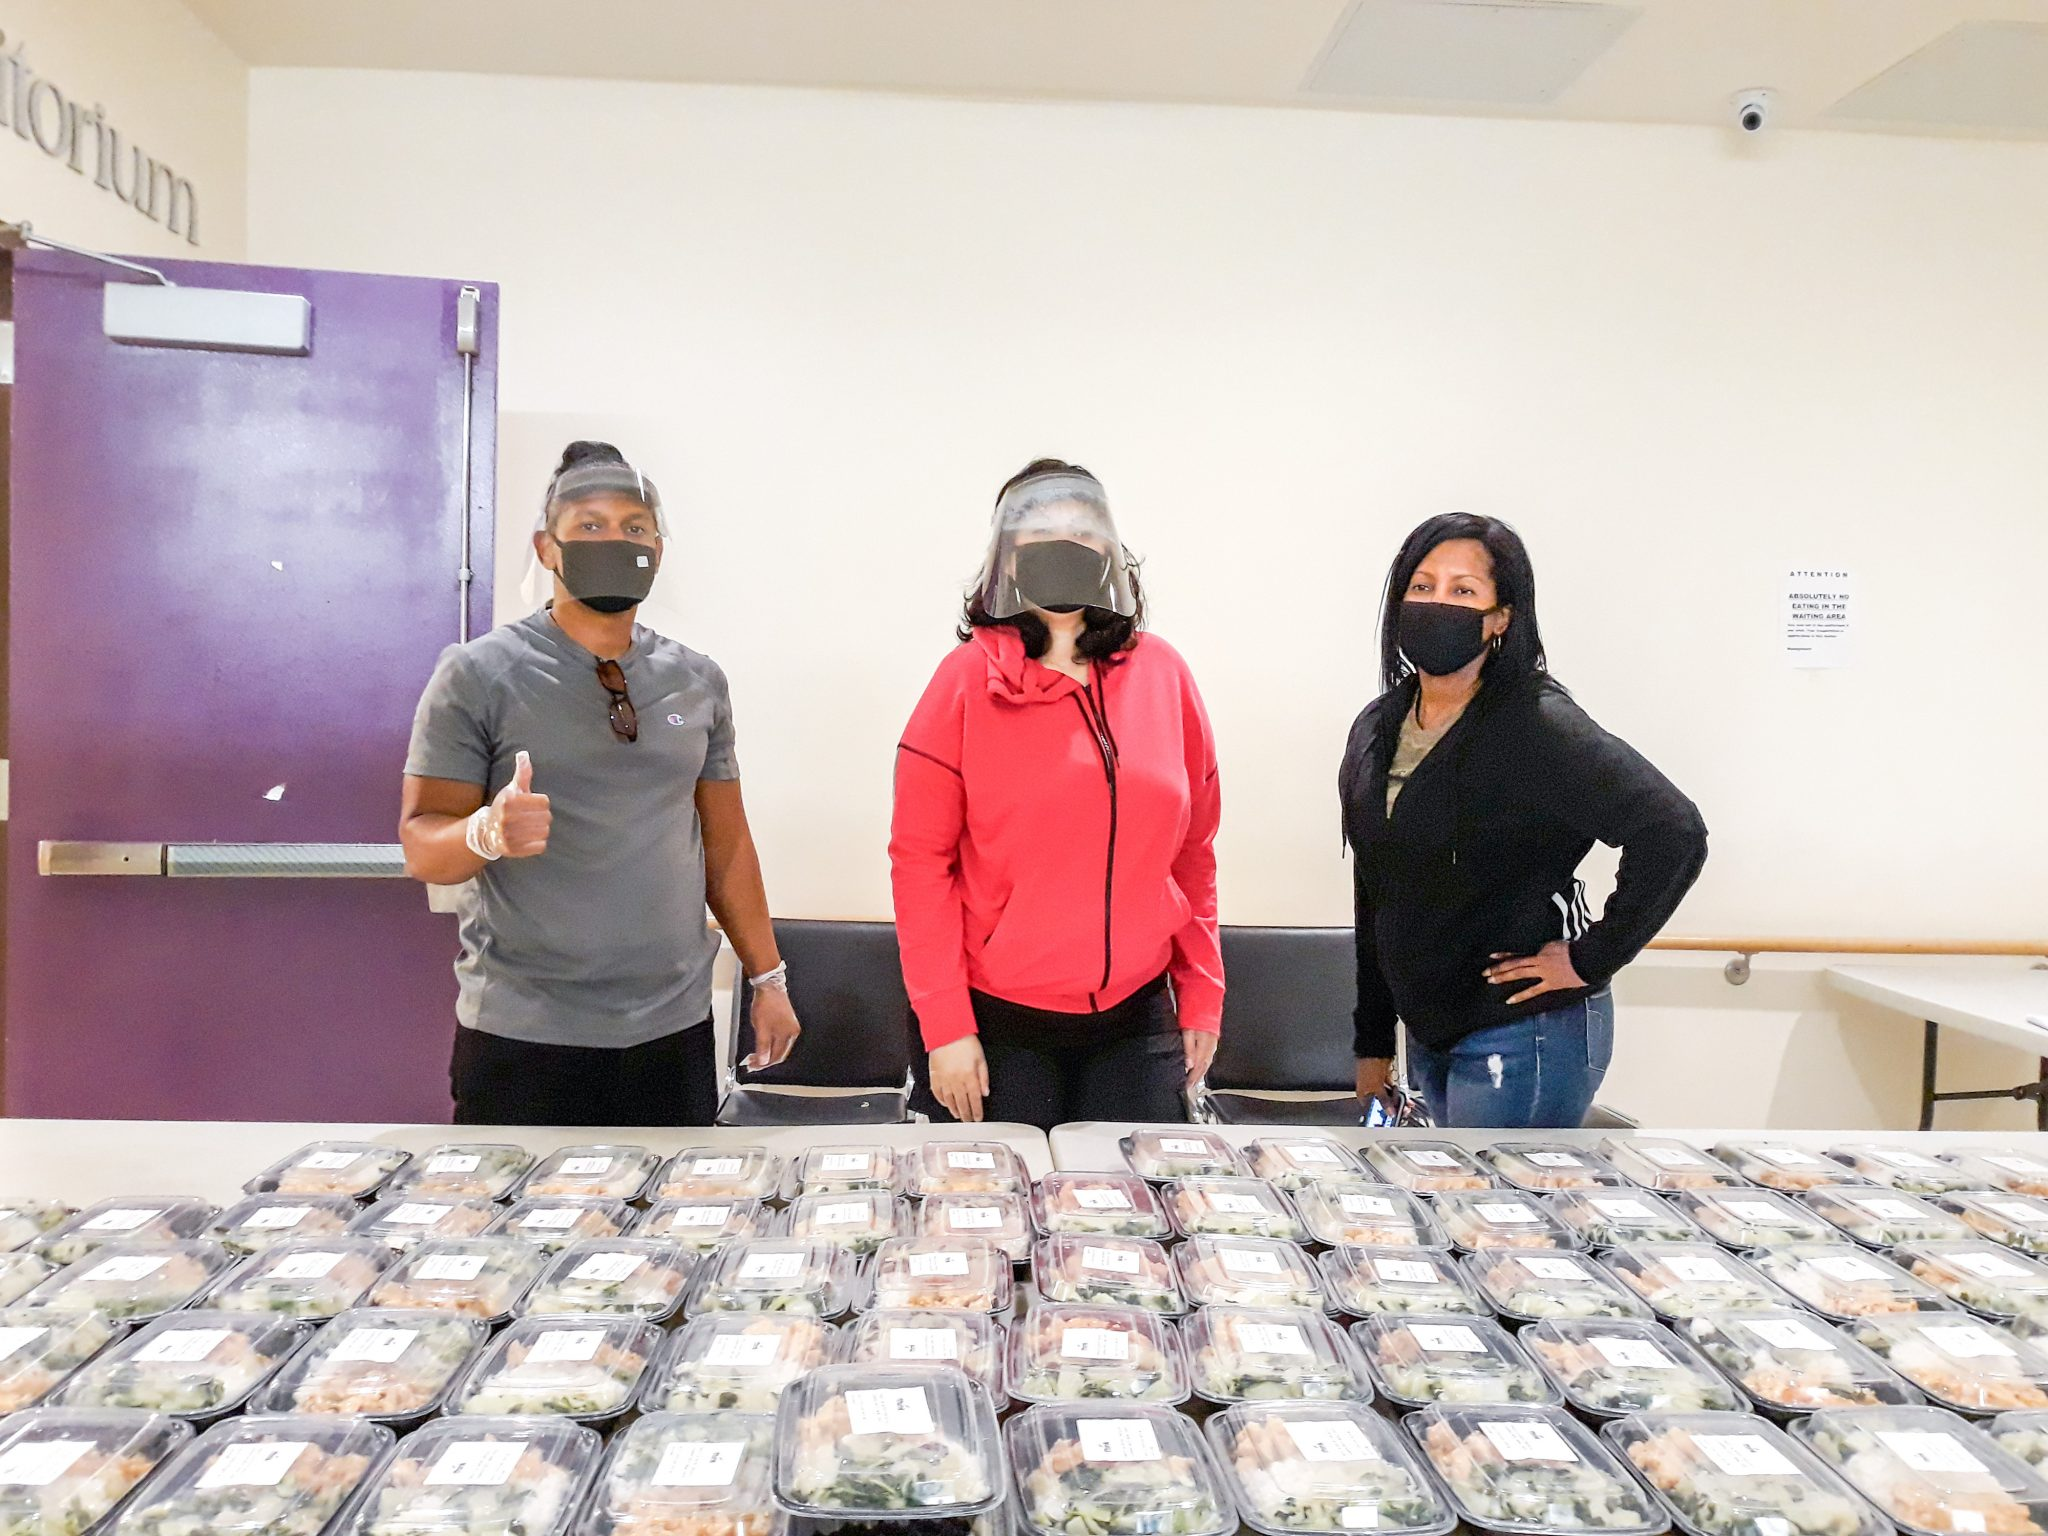 Three volunteers wearing masks stand in front of a large table filled with take-home plates of food.